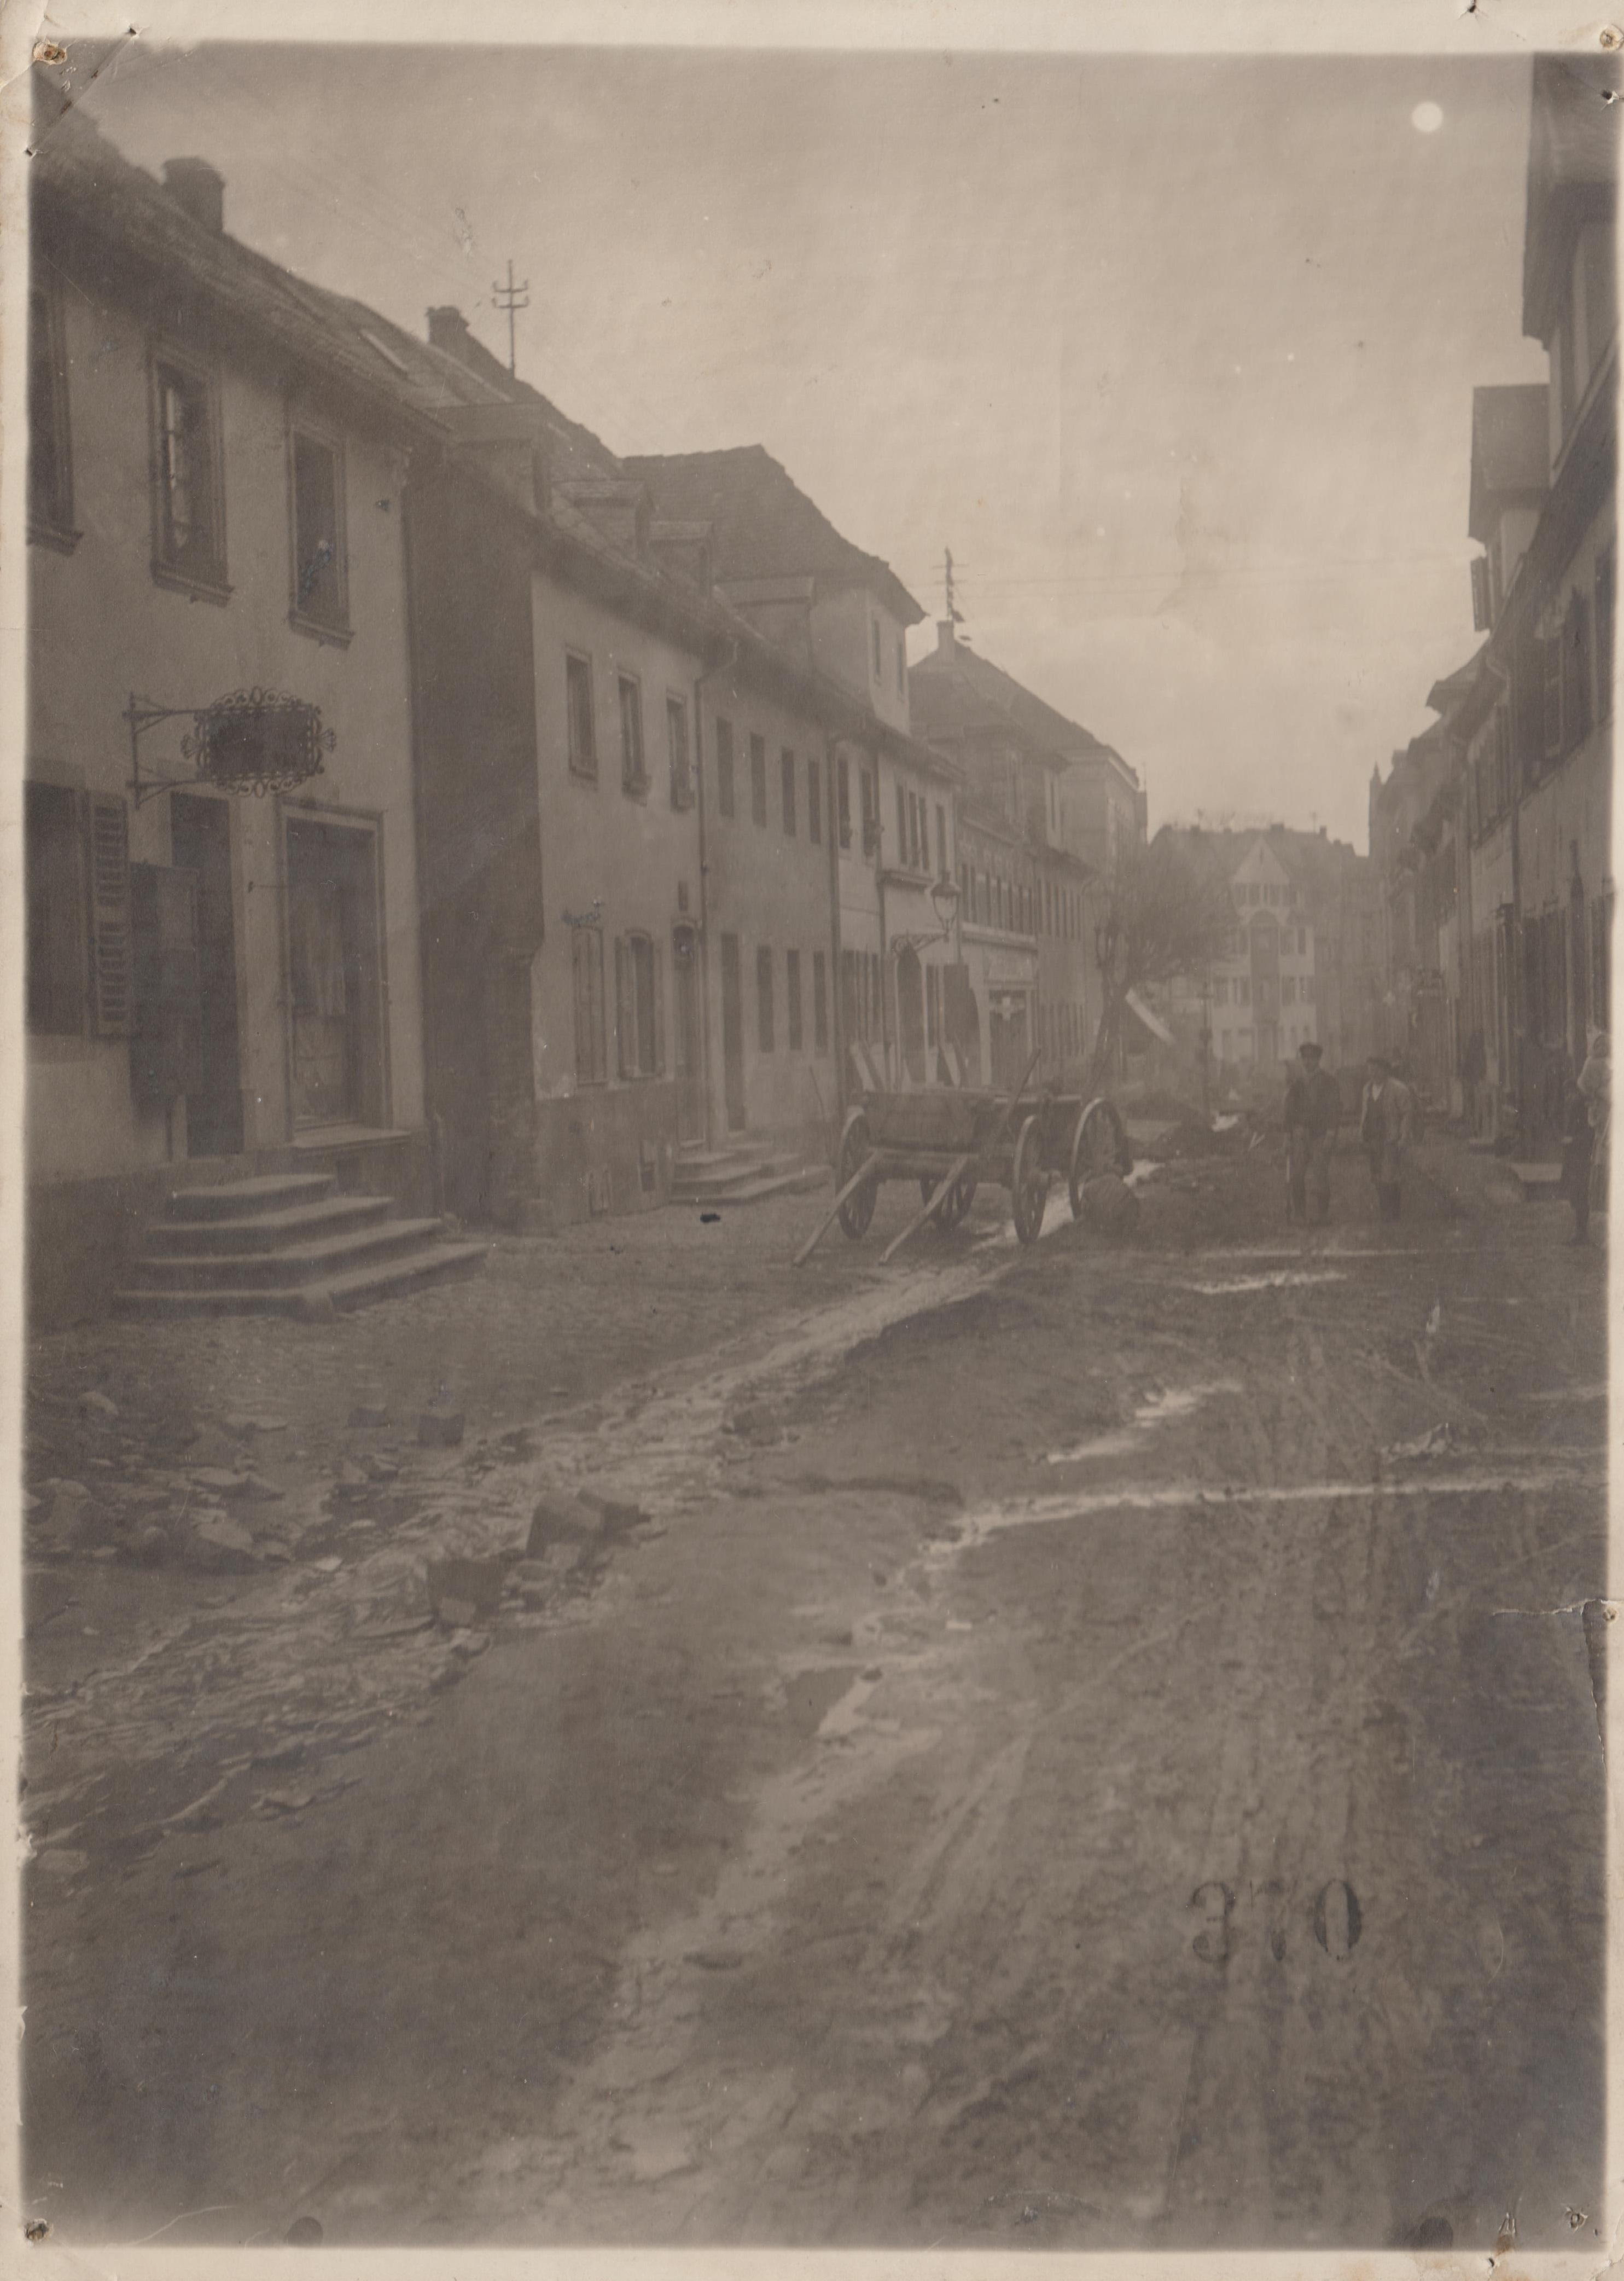 Obere Bachstrasse in Bendorf, Kanalisierung 1927 (REM CC BY-NC-SA)